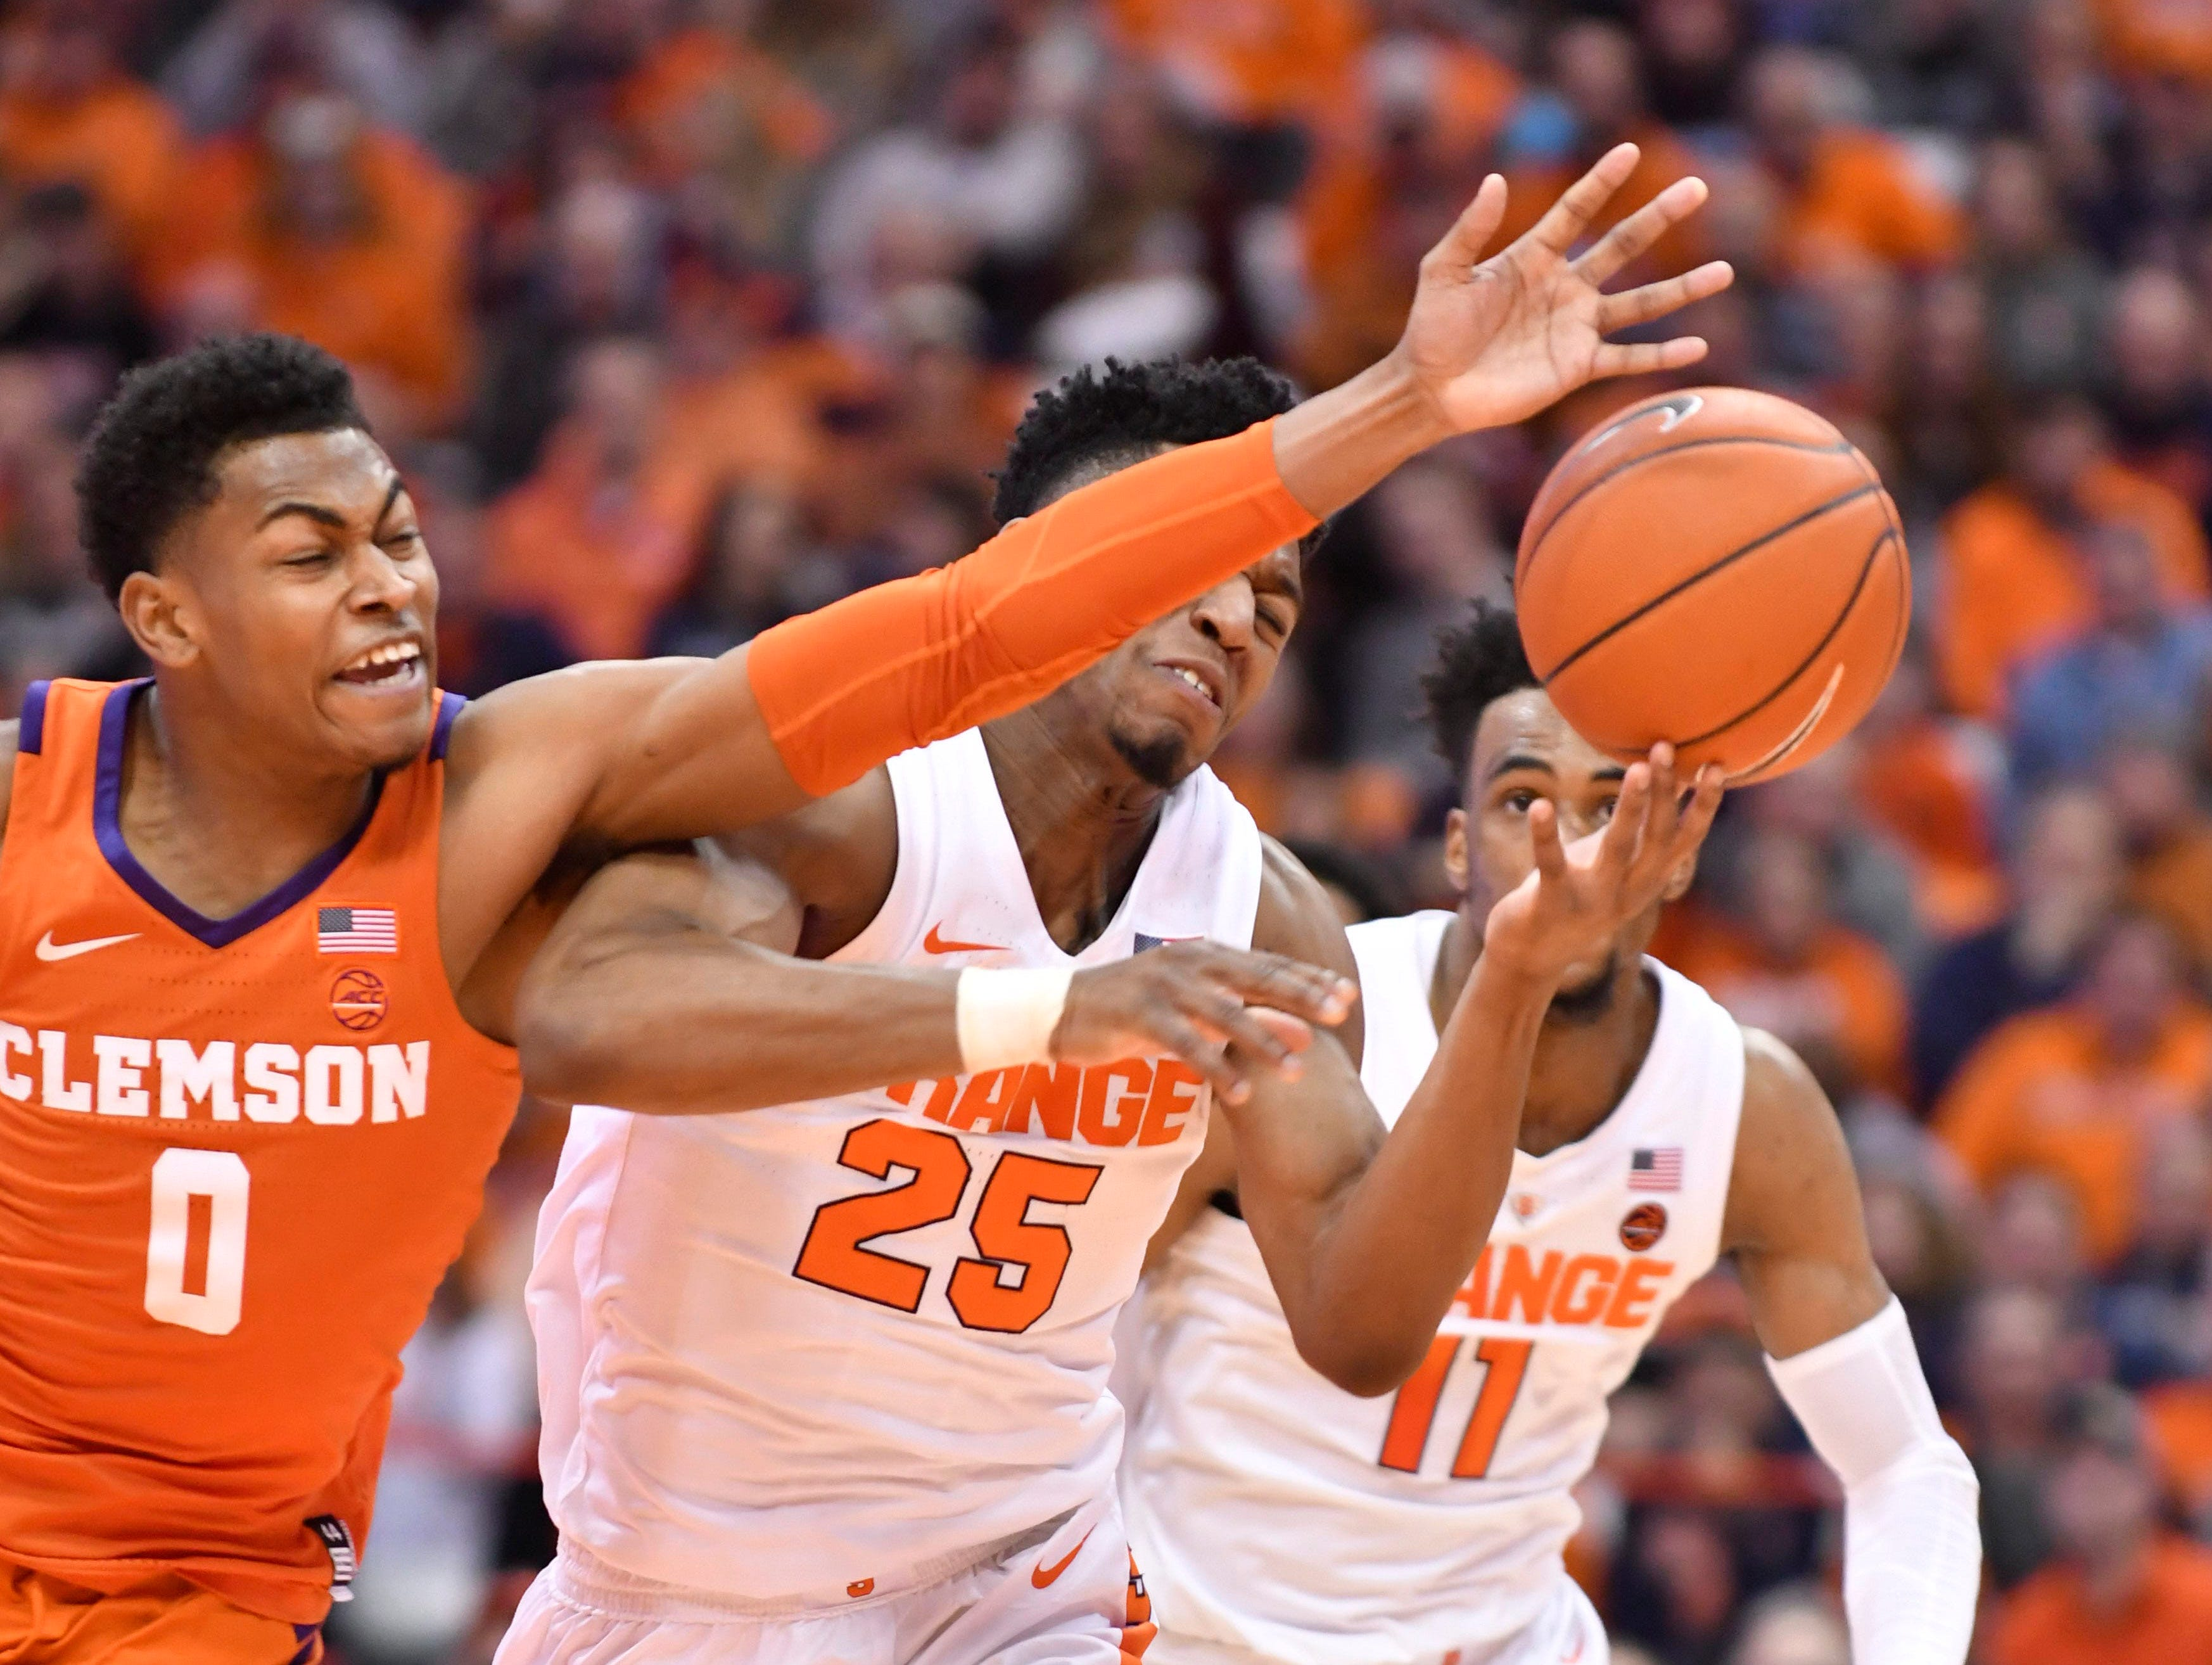 Jan 9, 2019; Syracuse, NY, USA; Clemson Tigers guard Clyde Trapp (0) fights for a loose ball with Syracuse Orange guard Tyus Battle (25) during the second half at the Carrier Dome.